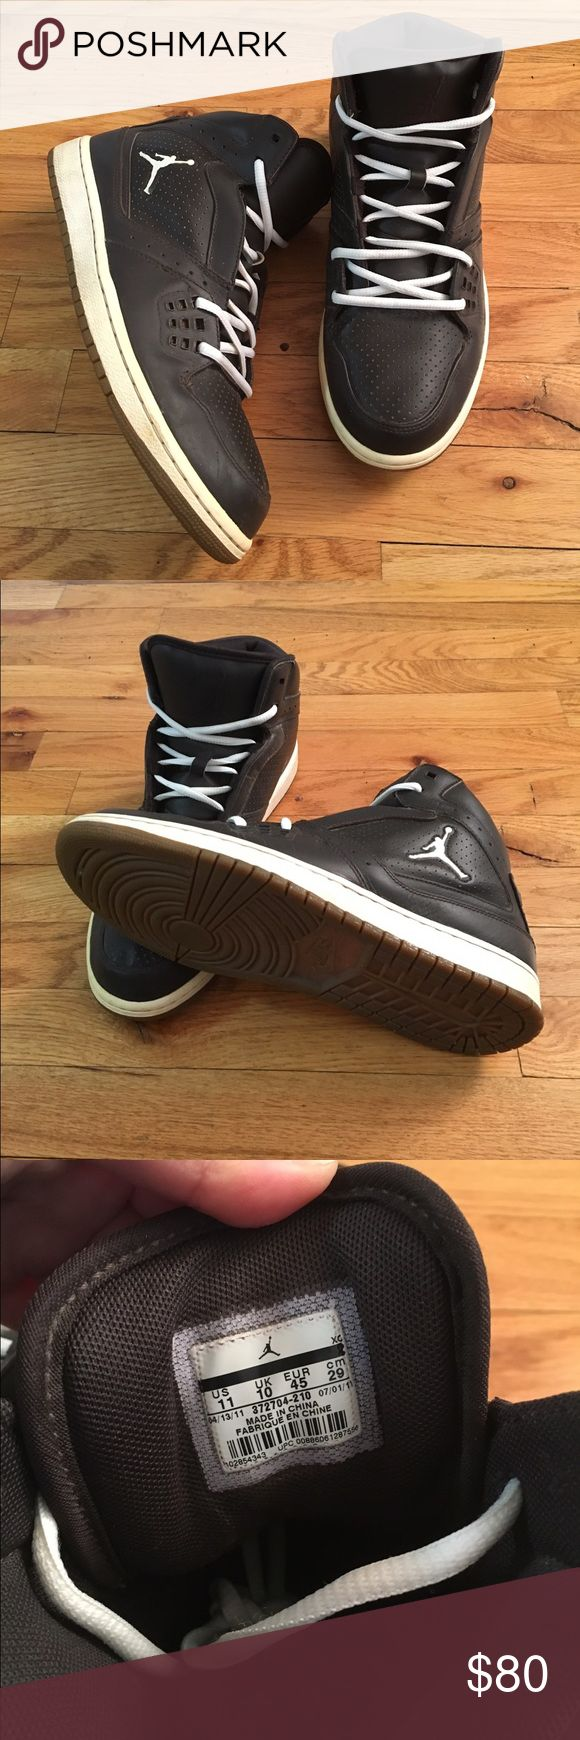 Rare Men Jordan Flight 1 Velvet Brown Sail Size 11 Good condition only worn twice but too small Men's Jordans size 11. With original Jordan laces Jordan Shoes Athletic Shoes